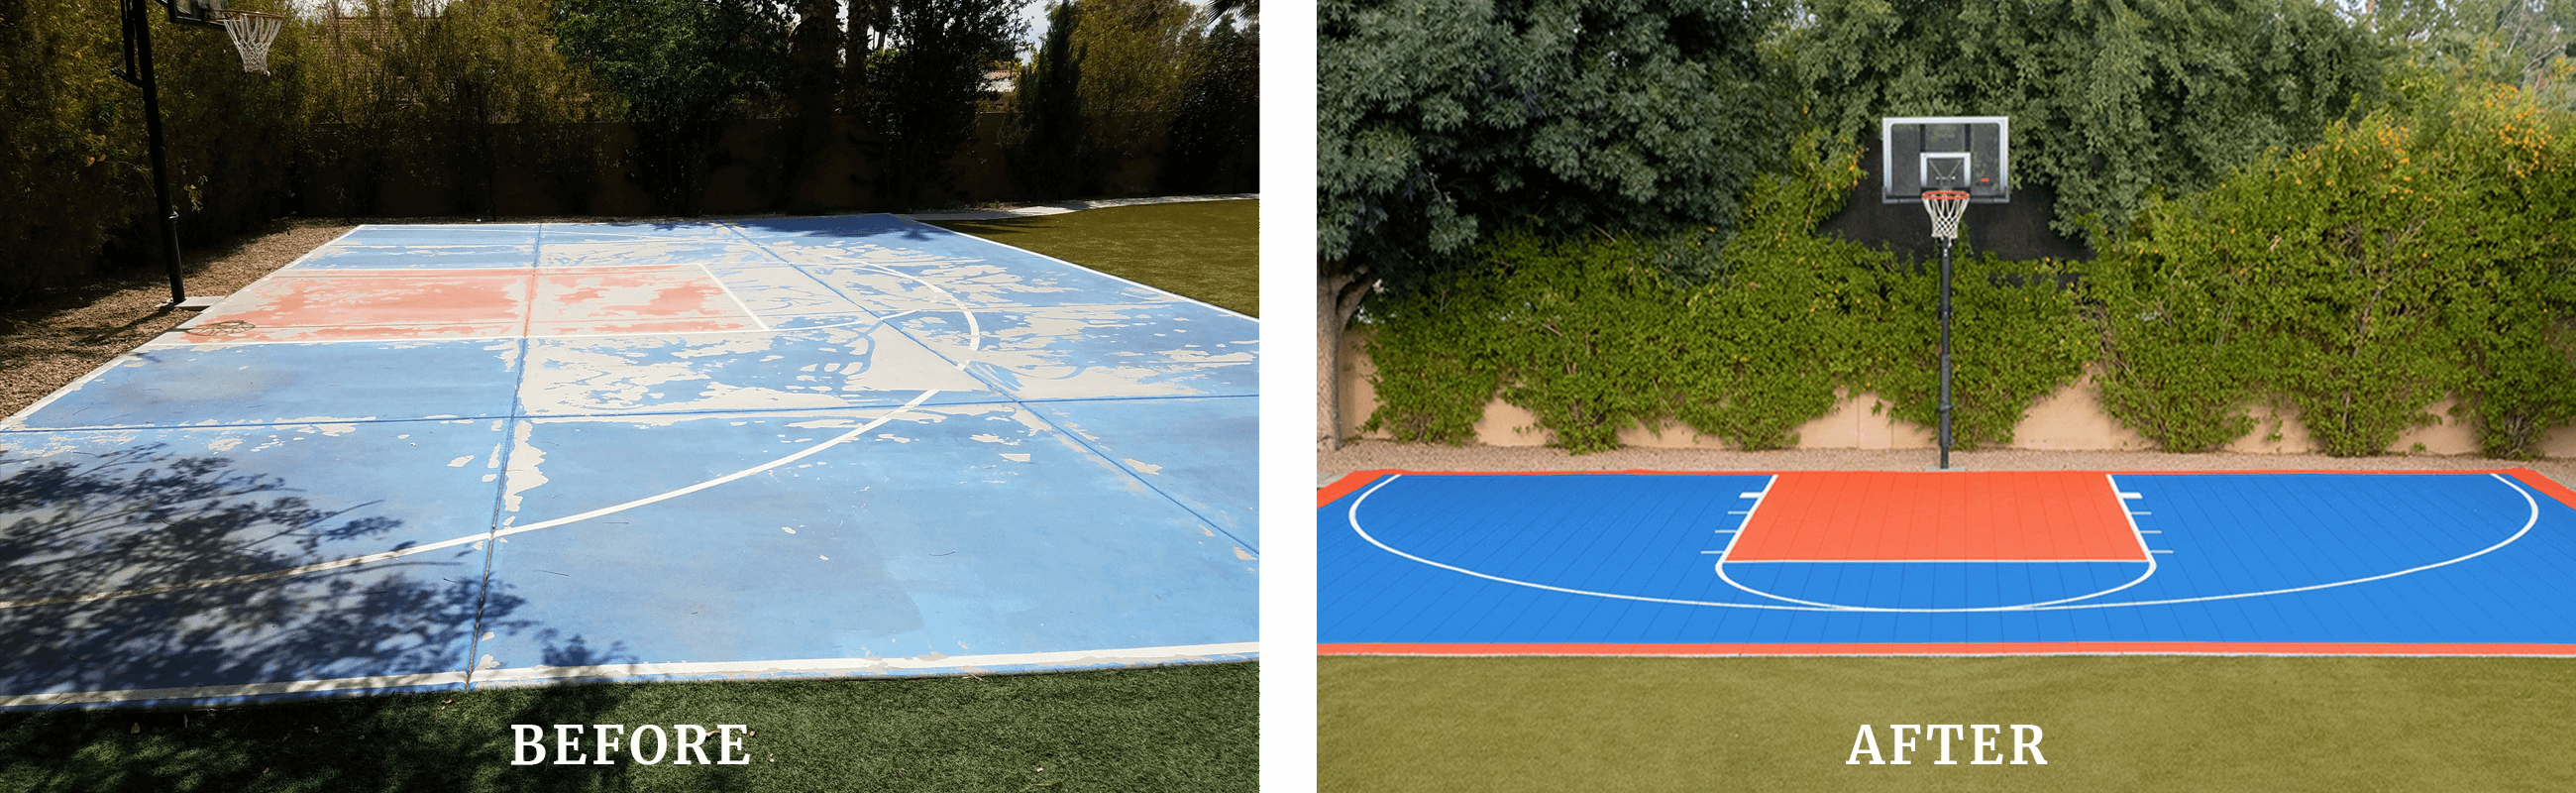 Before and After Sport Court Design